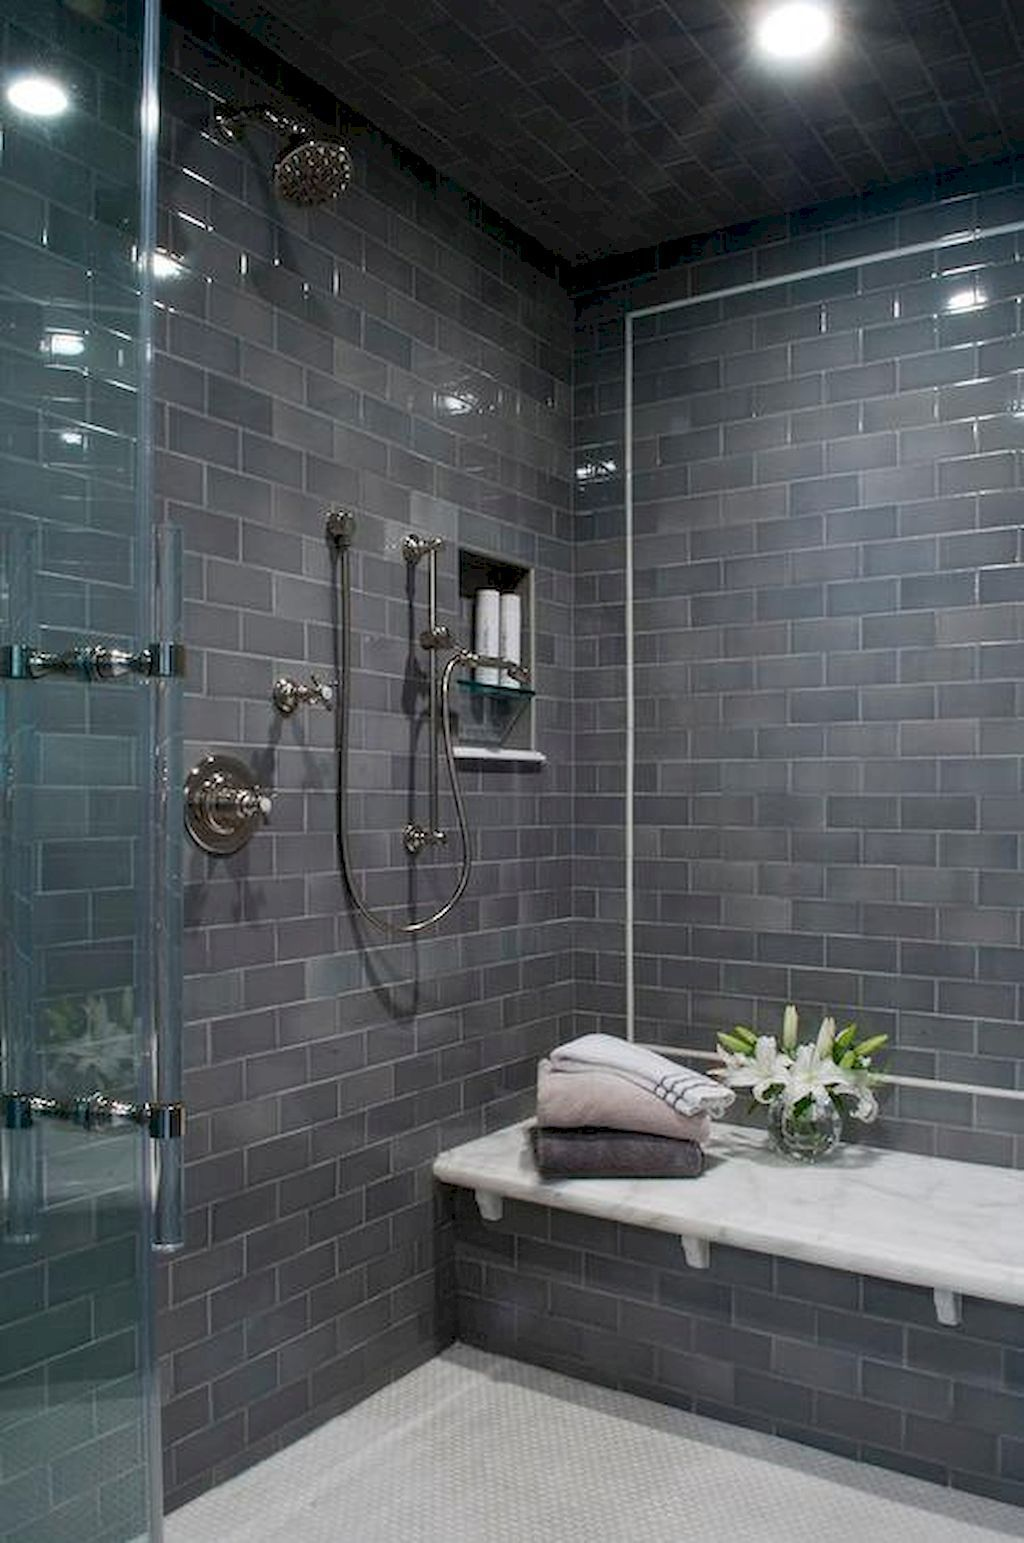 80 Stunning Tile Shower Designs Ideas For Bathroom Remodel